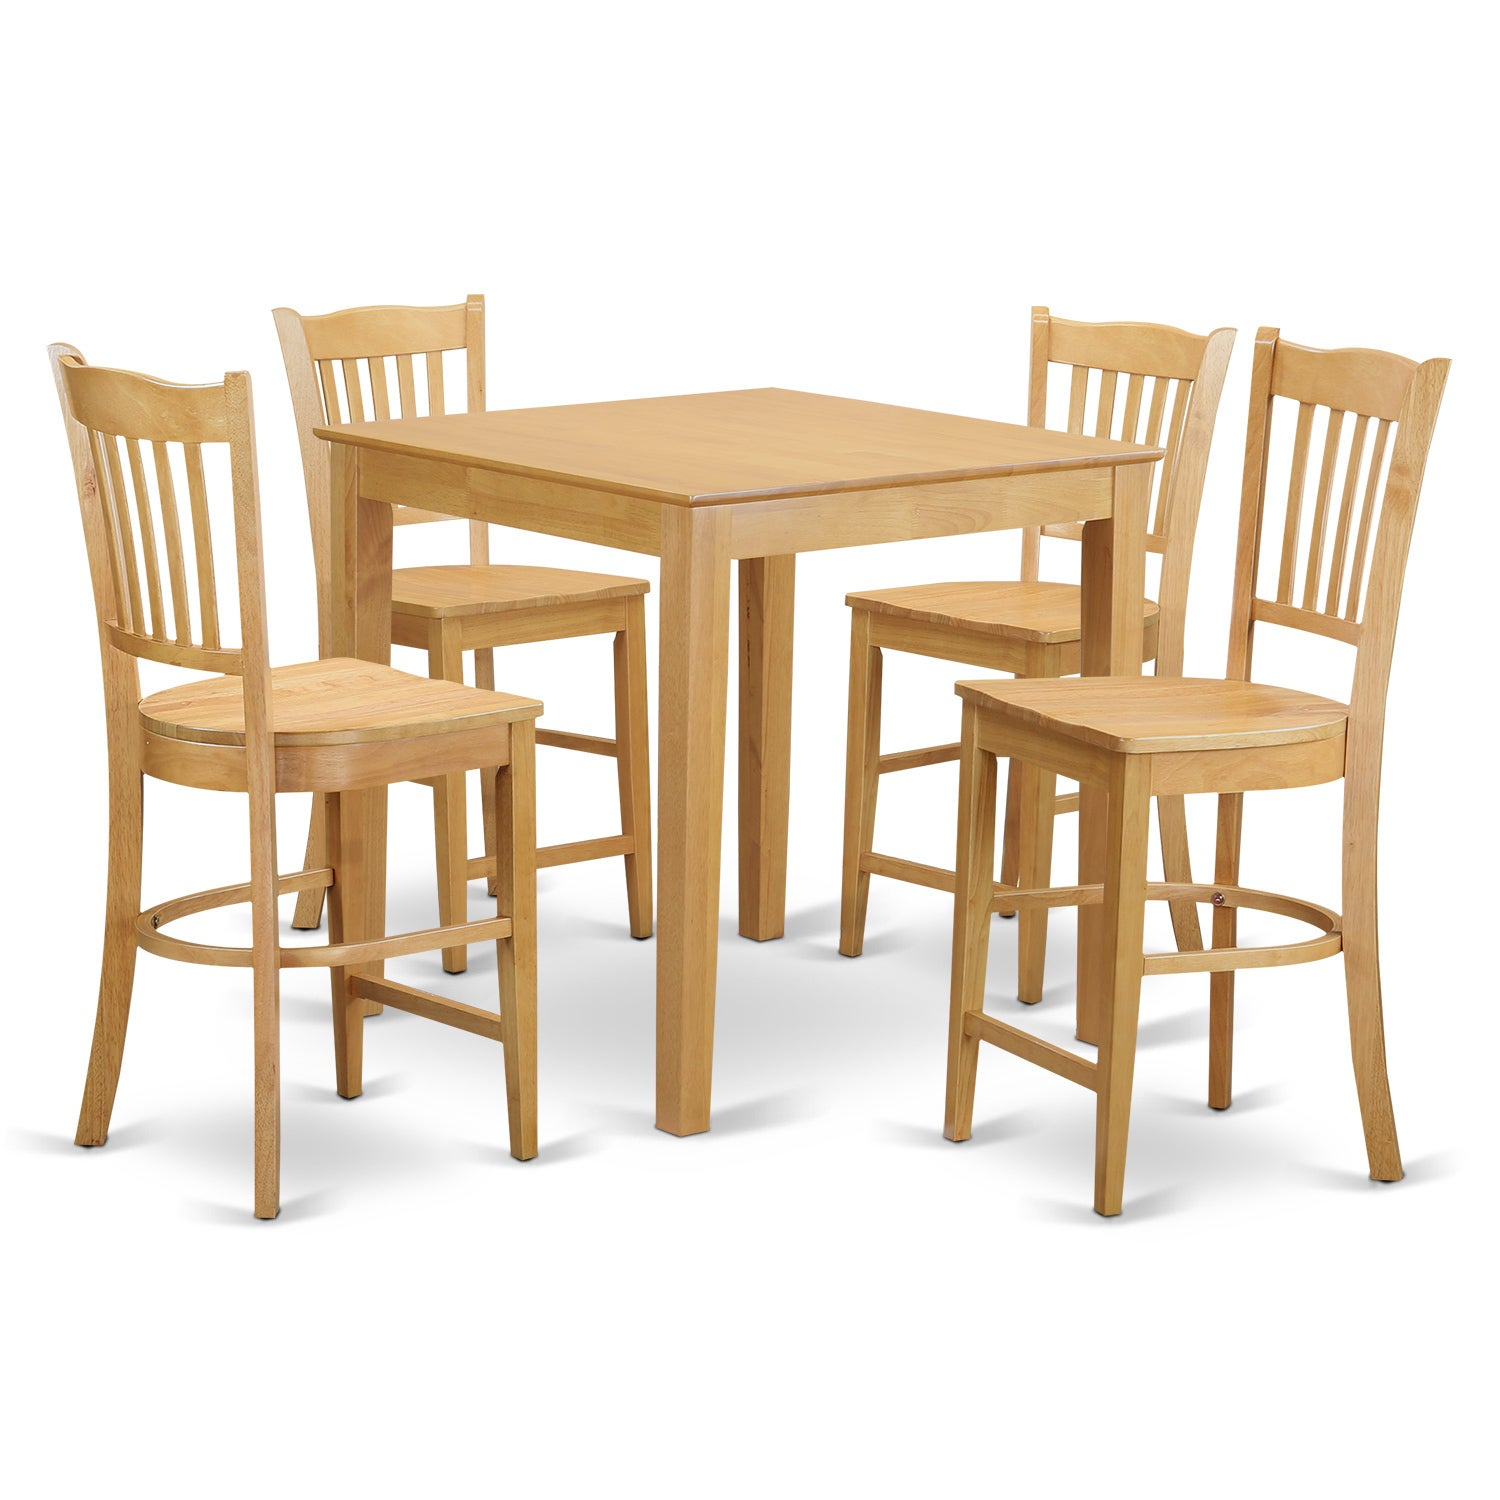 Counter Height Stool 5 Piece Pub Table